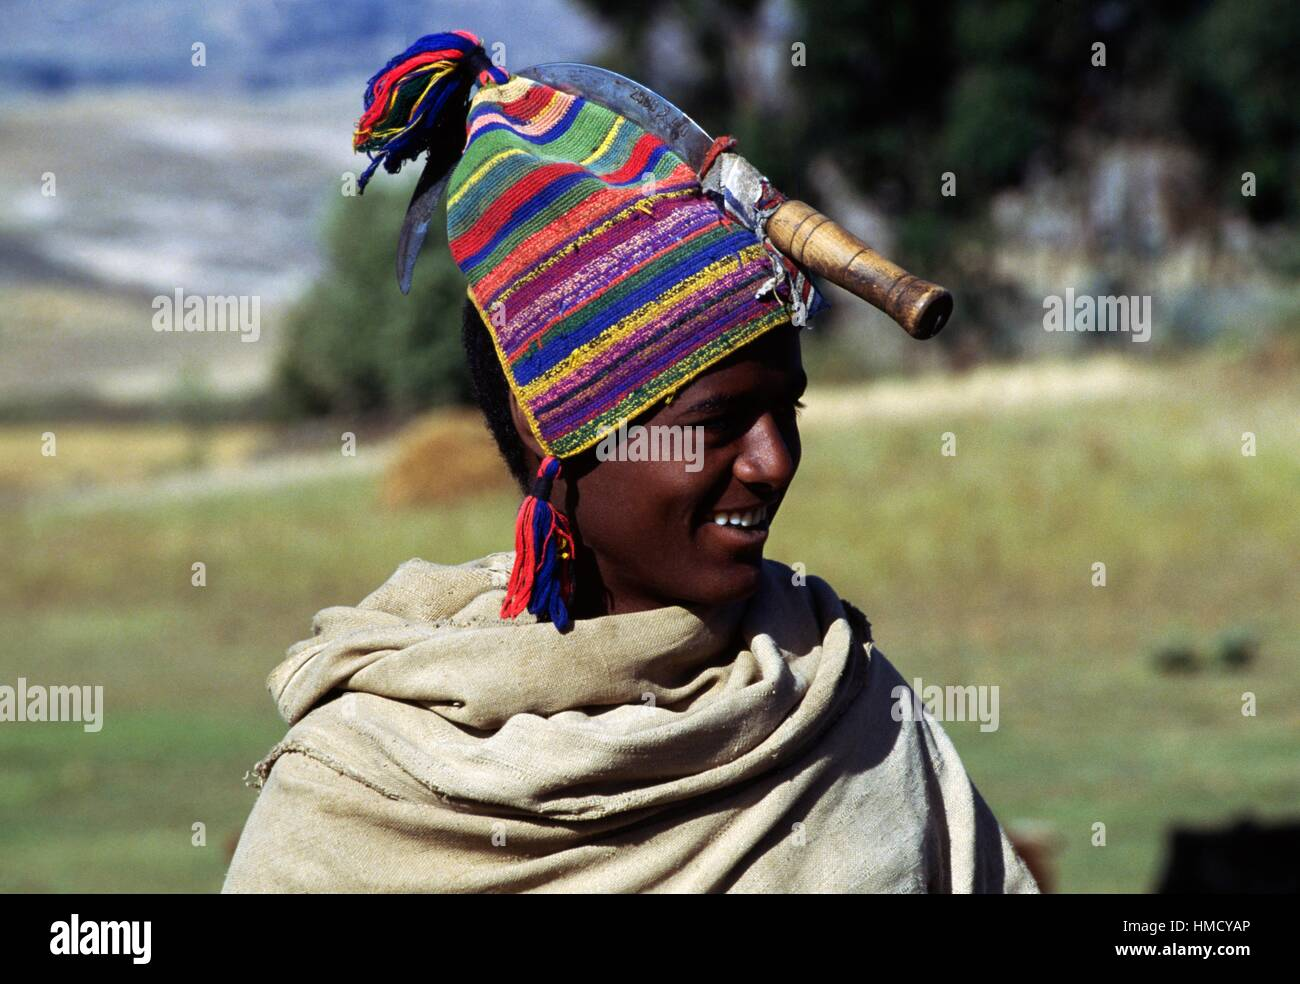 Debre Tabor Stock Photos & Debre Tabor Stock Images - Alamy